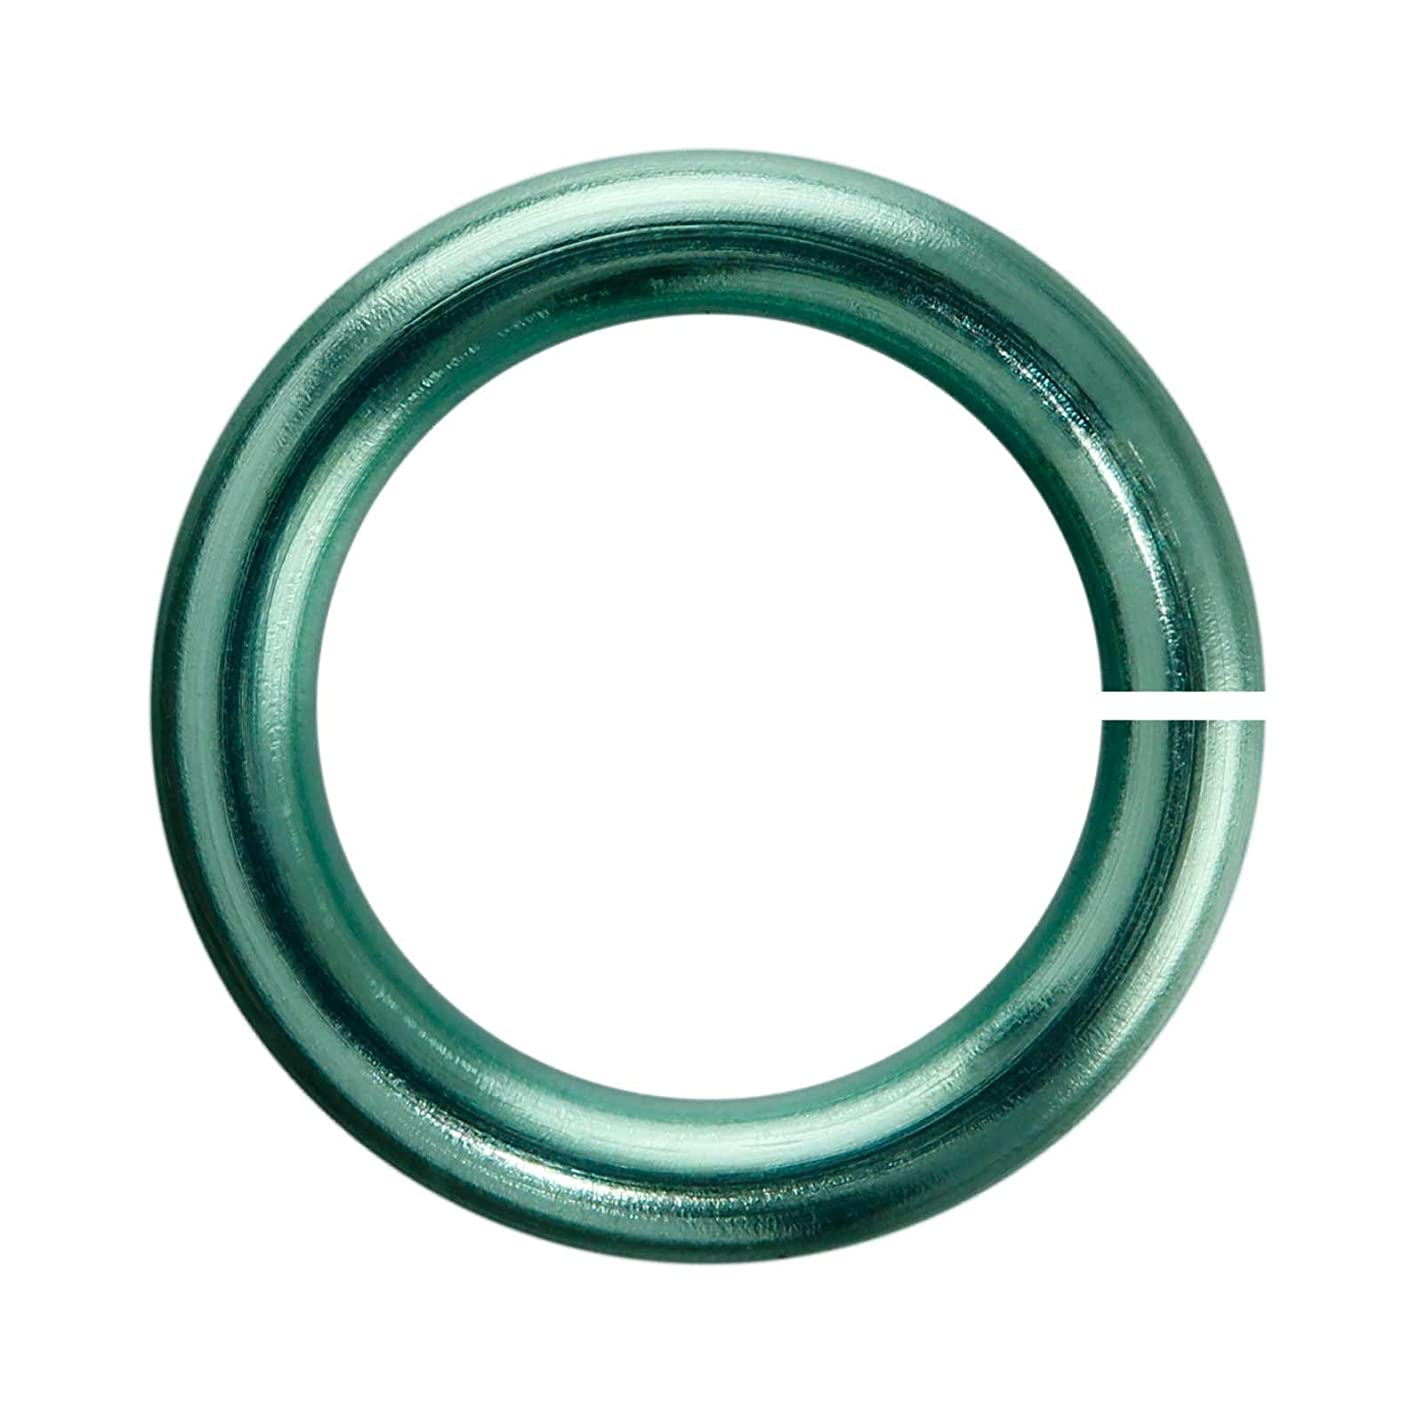 18-Gauge 7mm Seafoam Enameled Copper Jumprings - 1 ounce